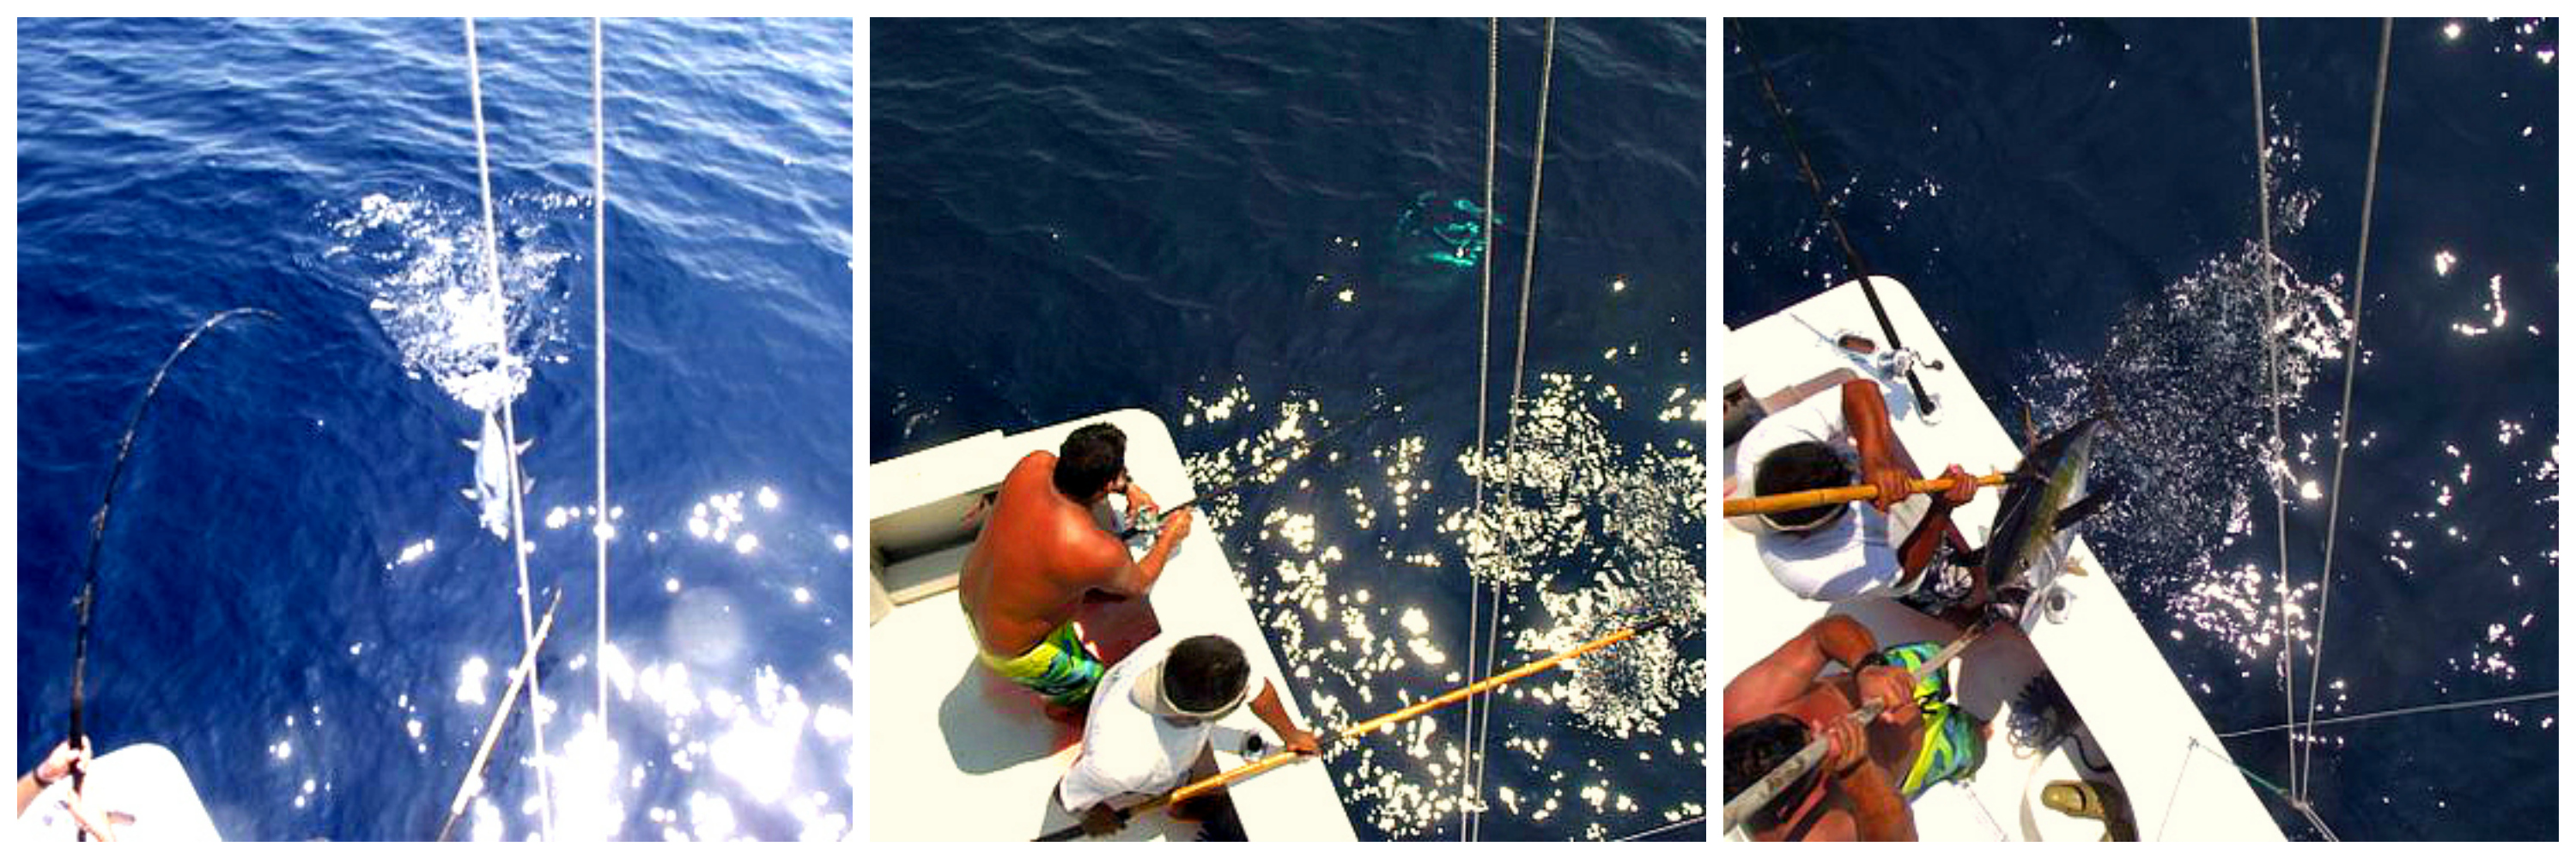 05 29 2015  Andelé Yellowfin El Banco at the gaff  Colage